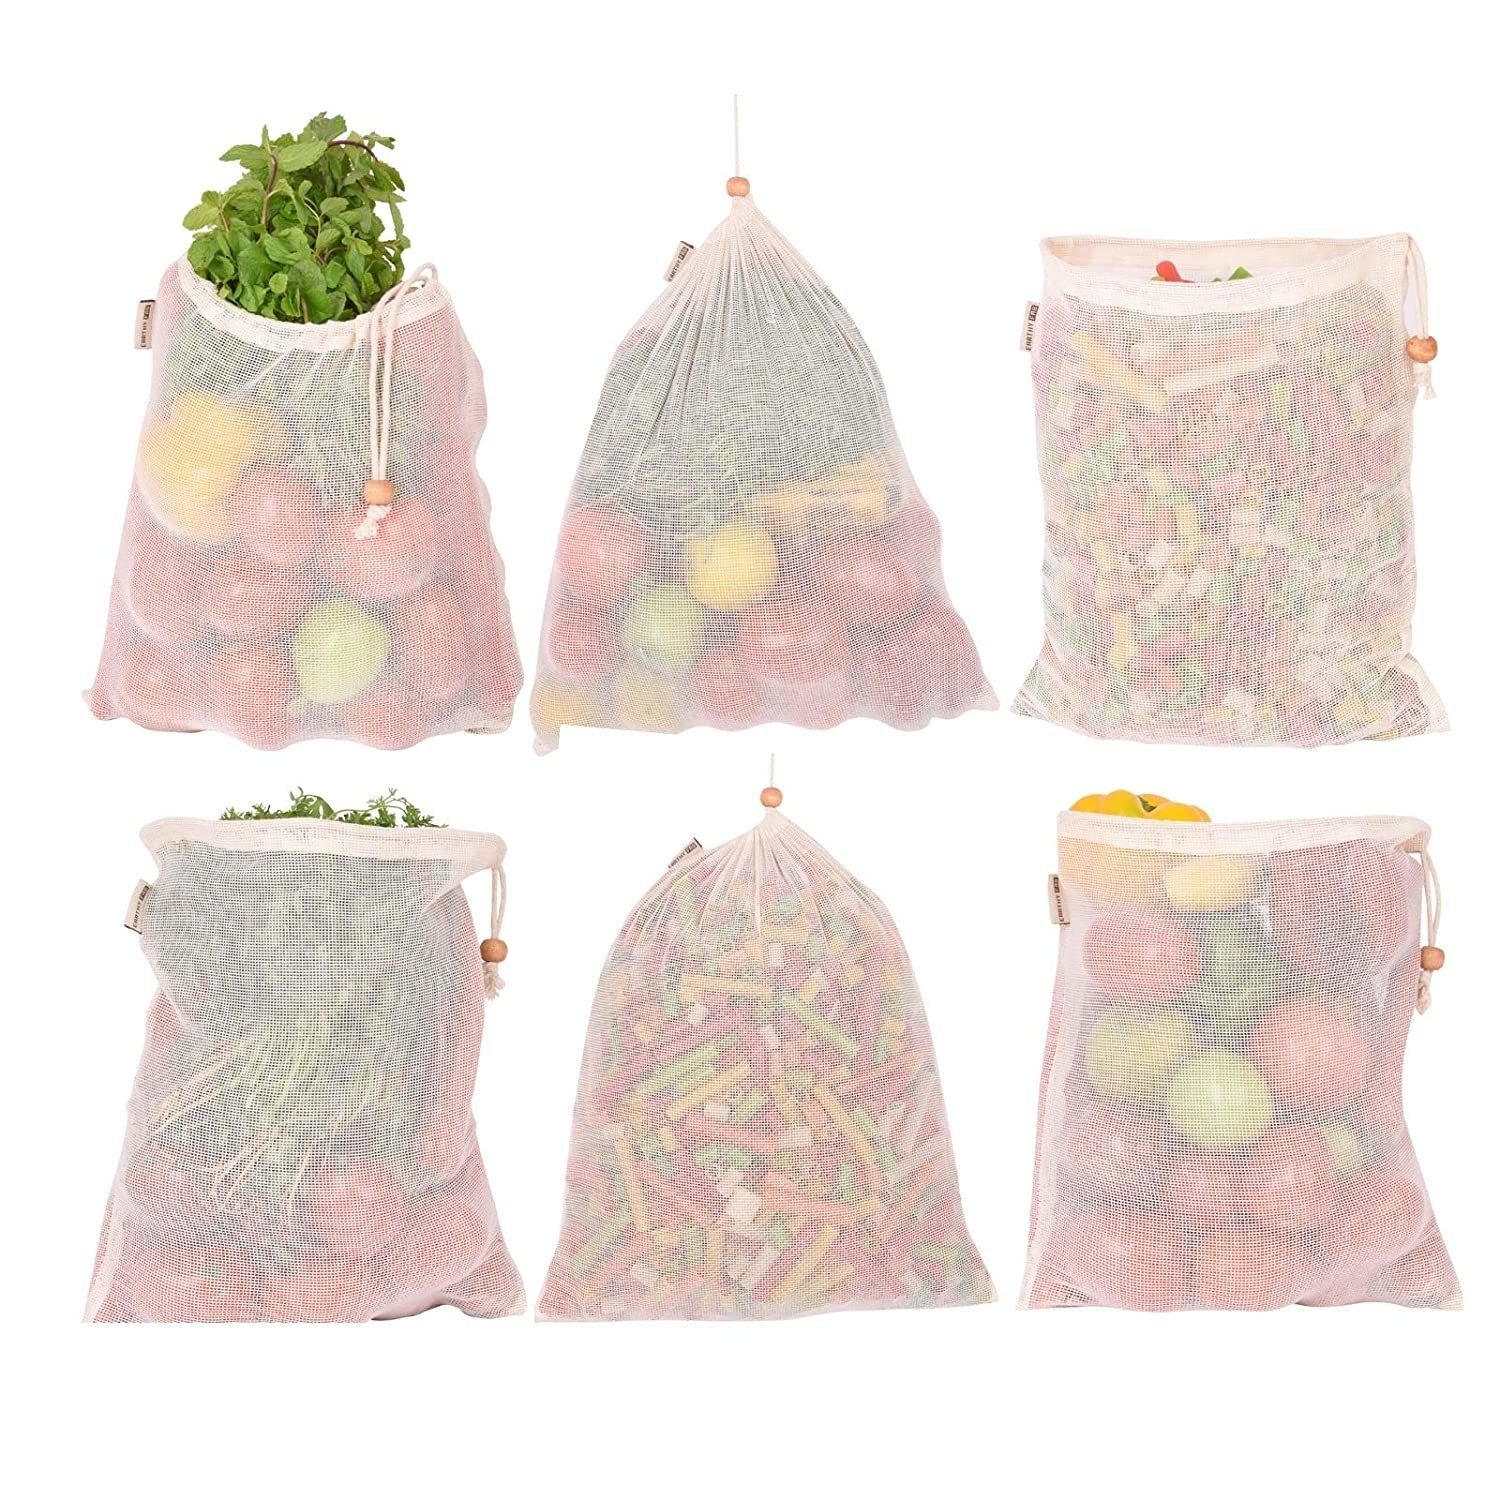 The mesh bags pictured with vegetables in them.